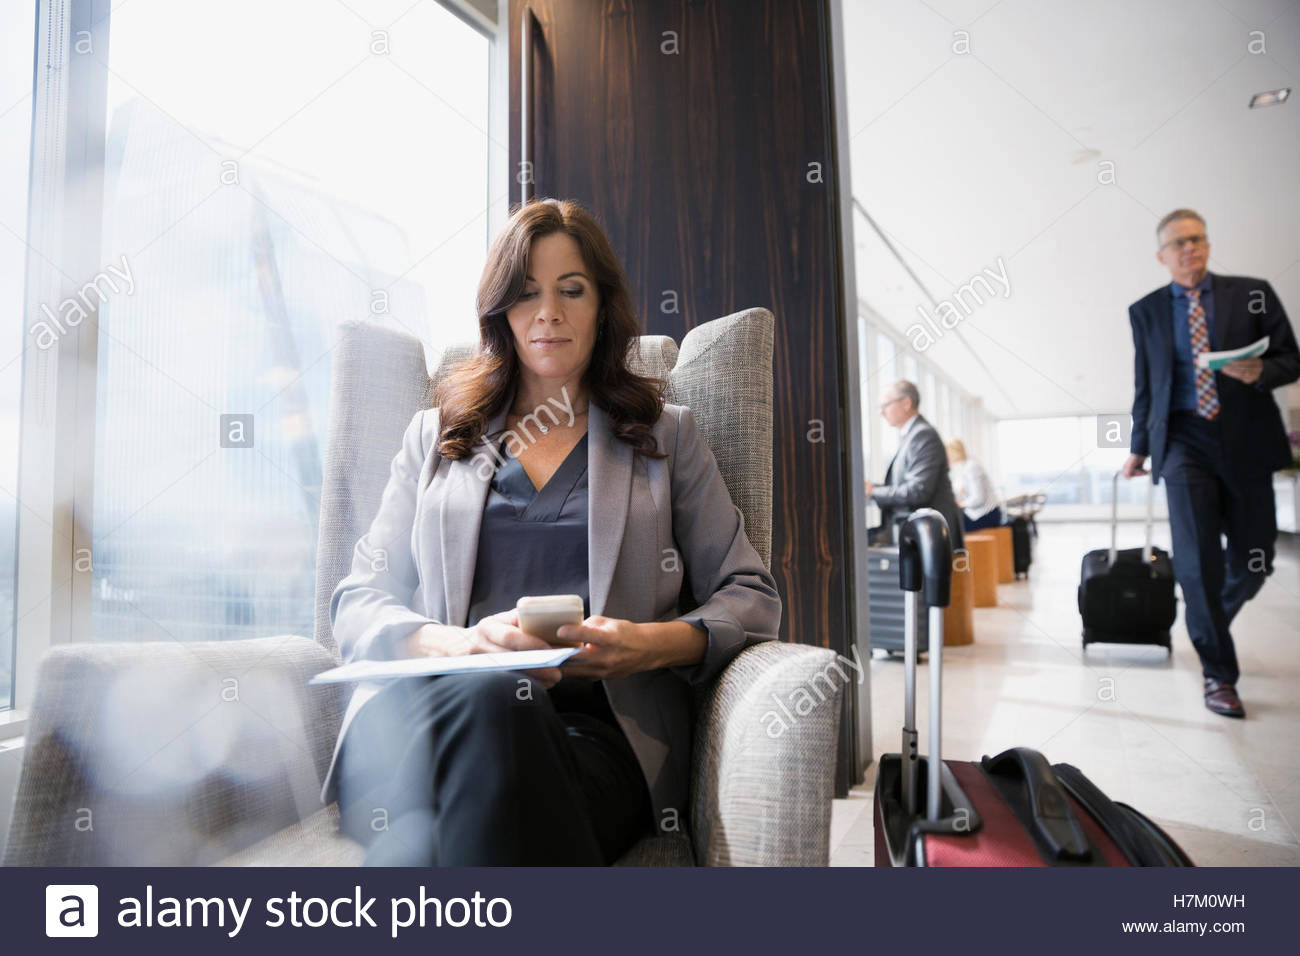 Businesswoman with luggage texting in airport lounge - Stock Image